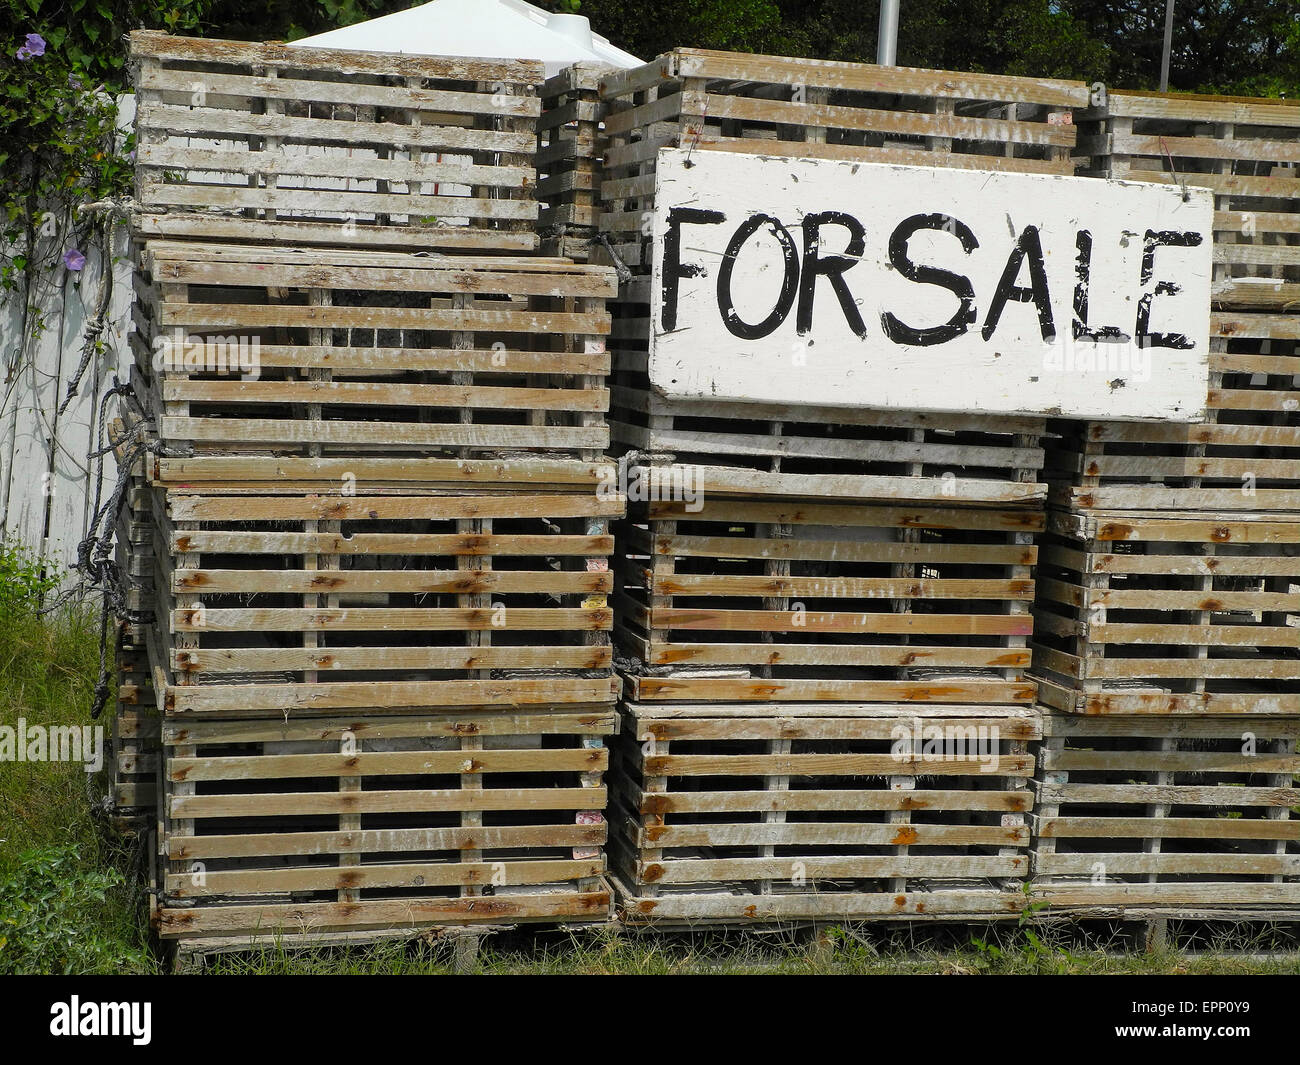 Traps for sale the old lobster traps are for sale and buyers traps for sale the old lobster traps are for sale and buyers lately are using the wood to make picture frames jeuxipadfo Choice Image